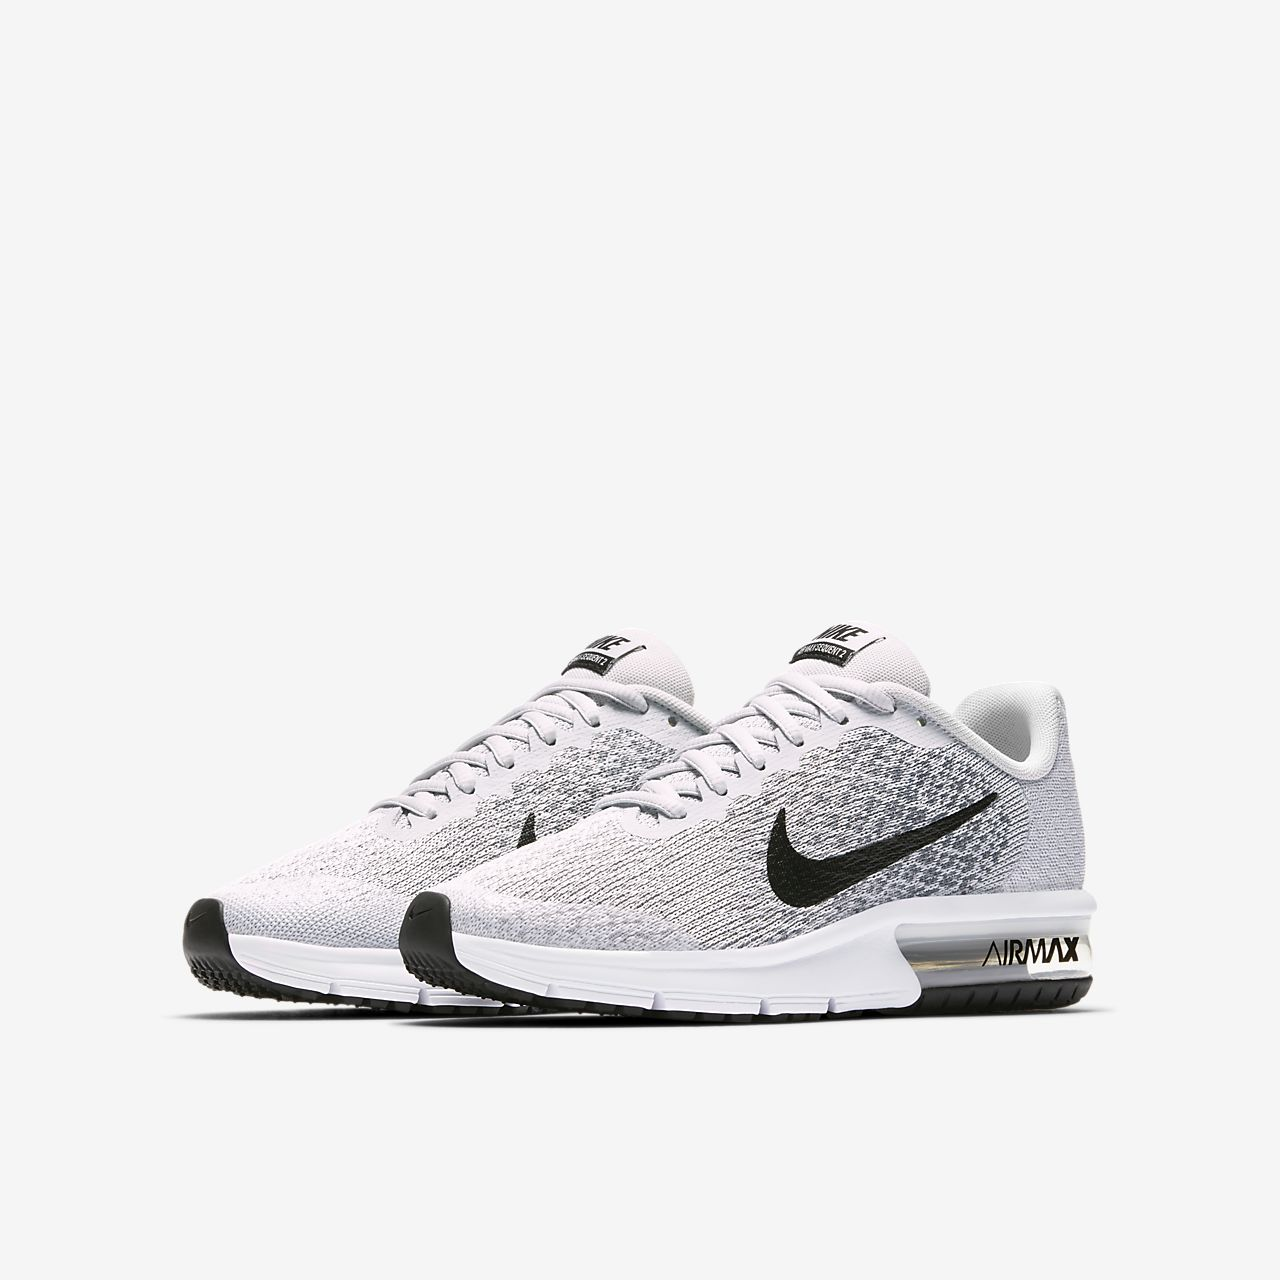 dfb5754419 Nike Air Max Sequent 2 Older Kids' Running Shoe. Nike.com IE